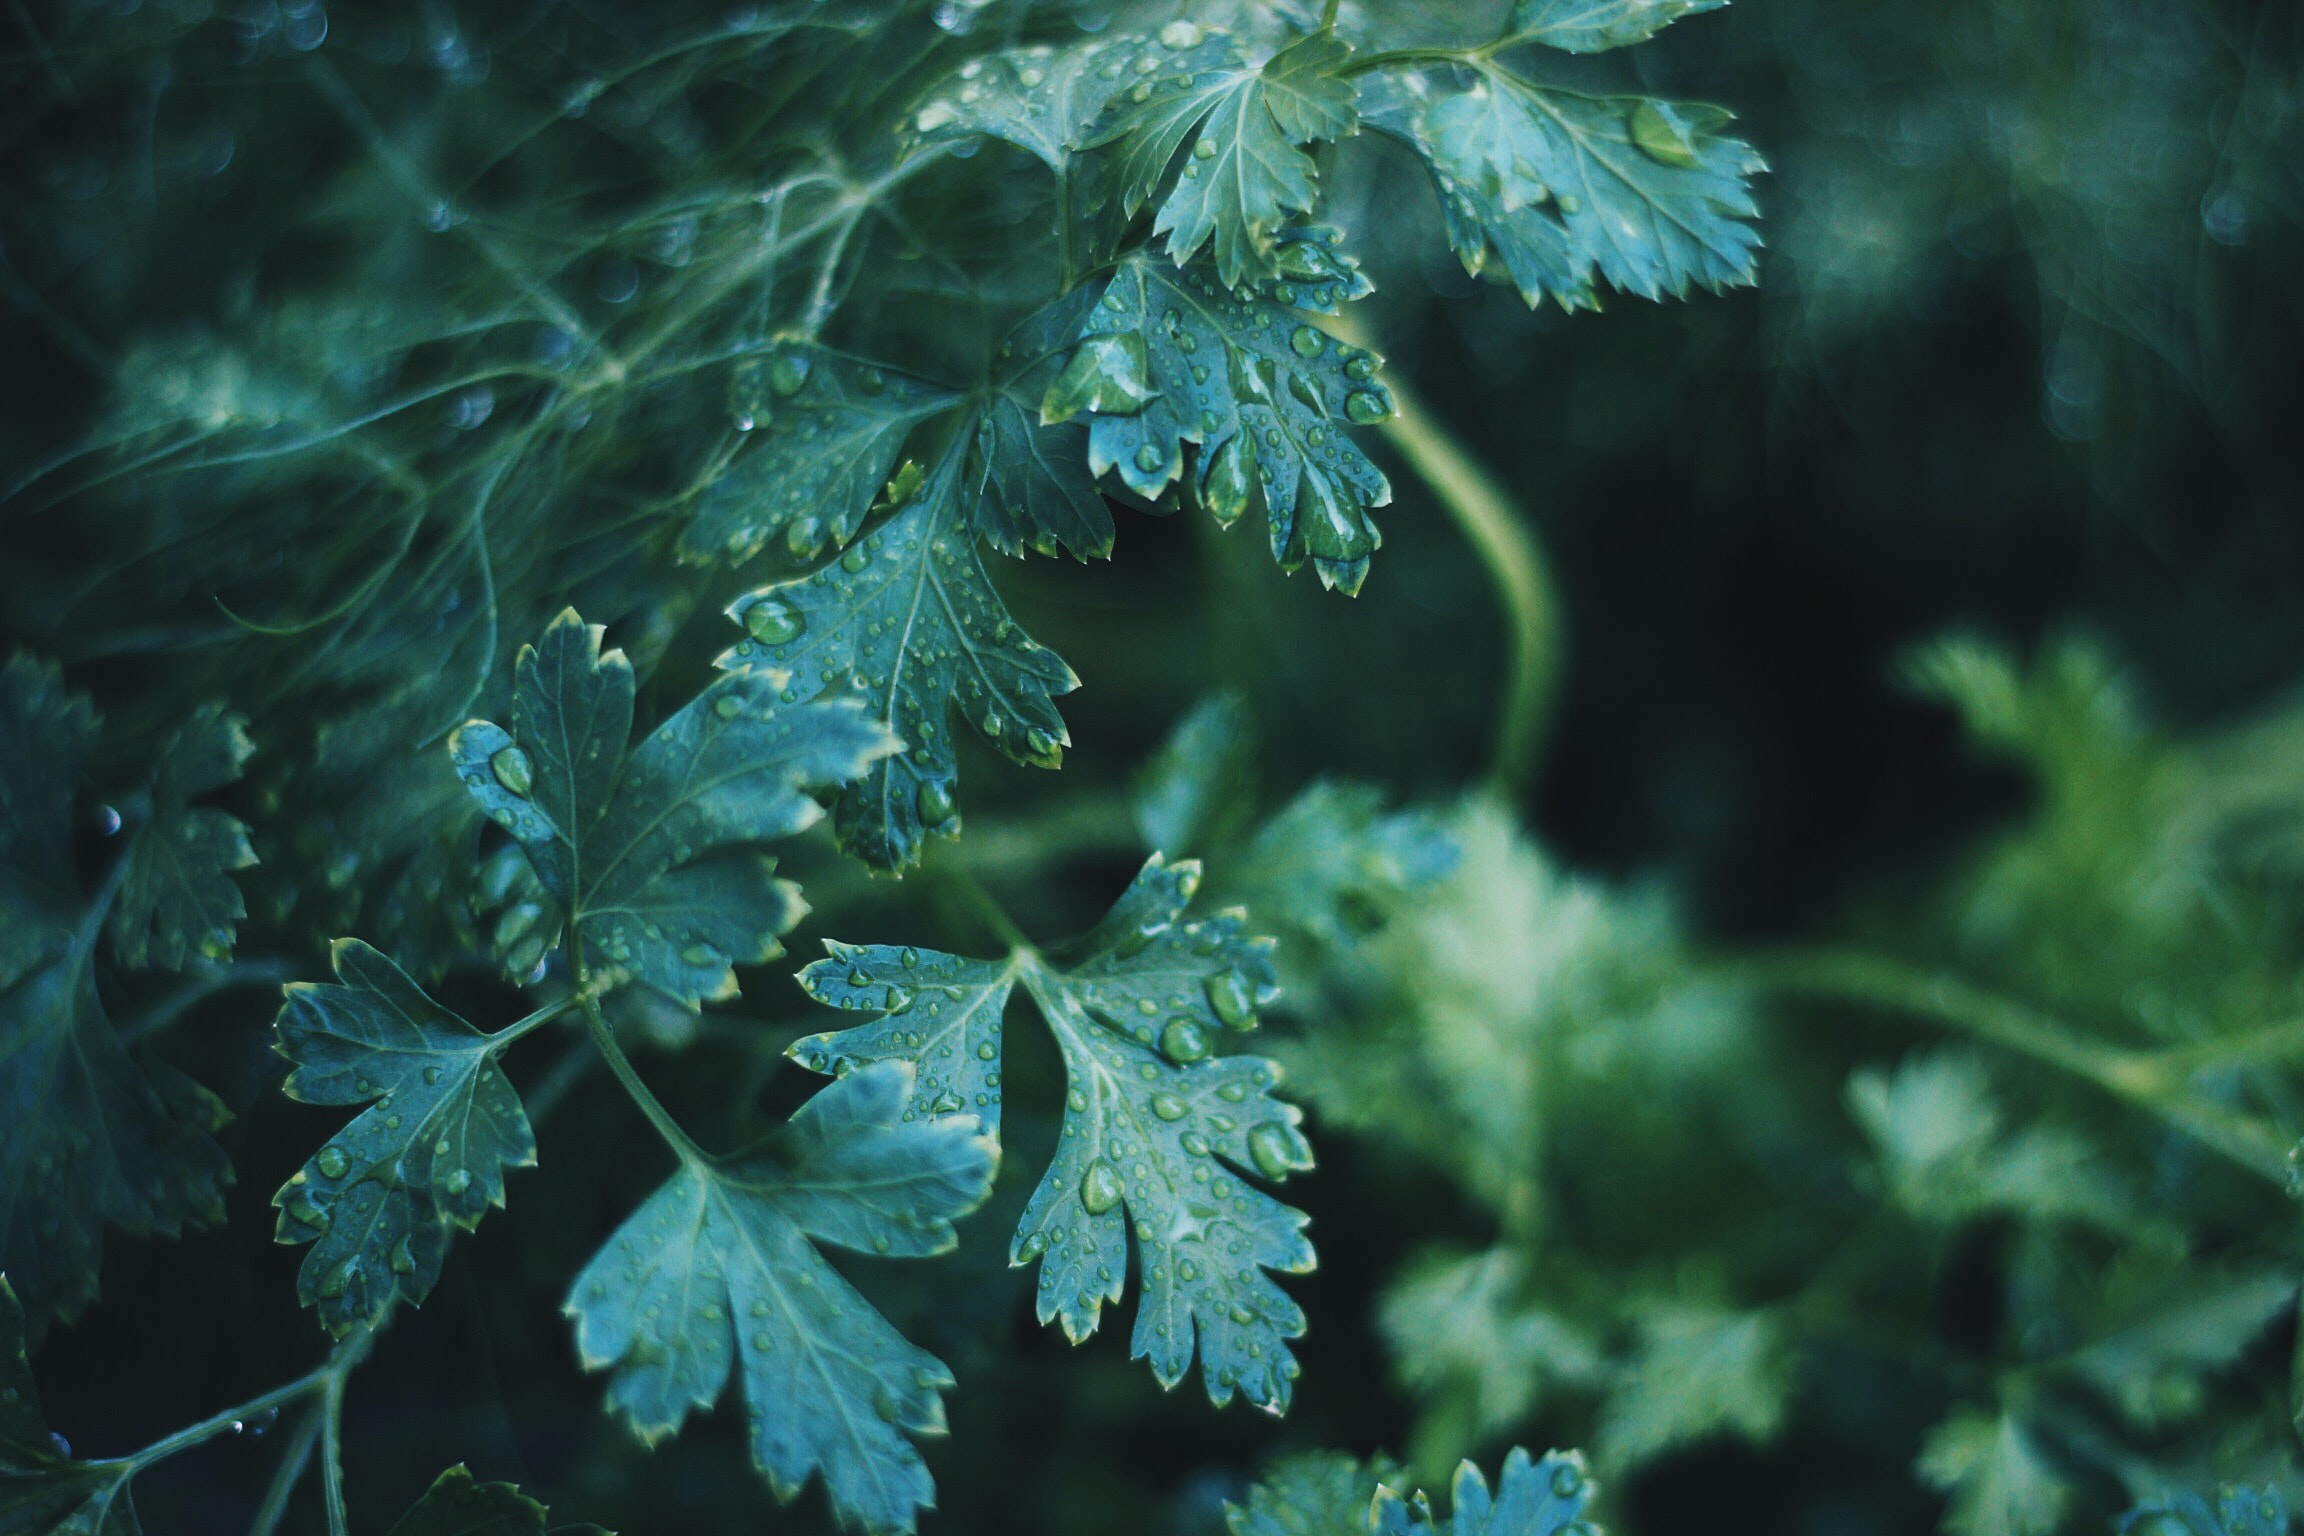 A macro shot of serrated dark green leaves covered with droplets of water